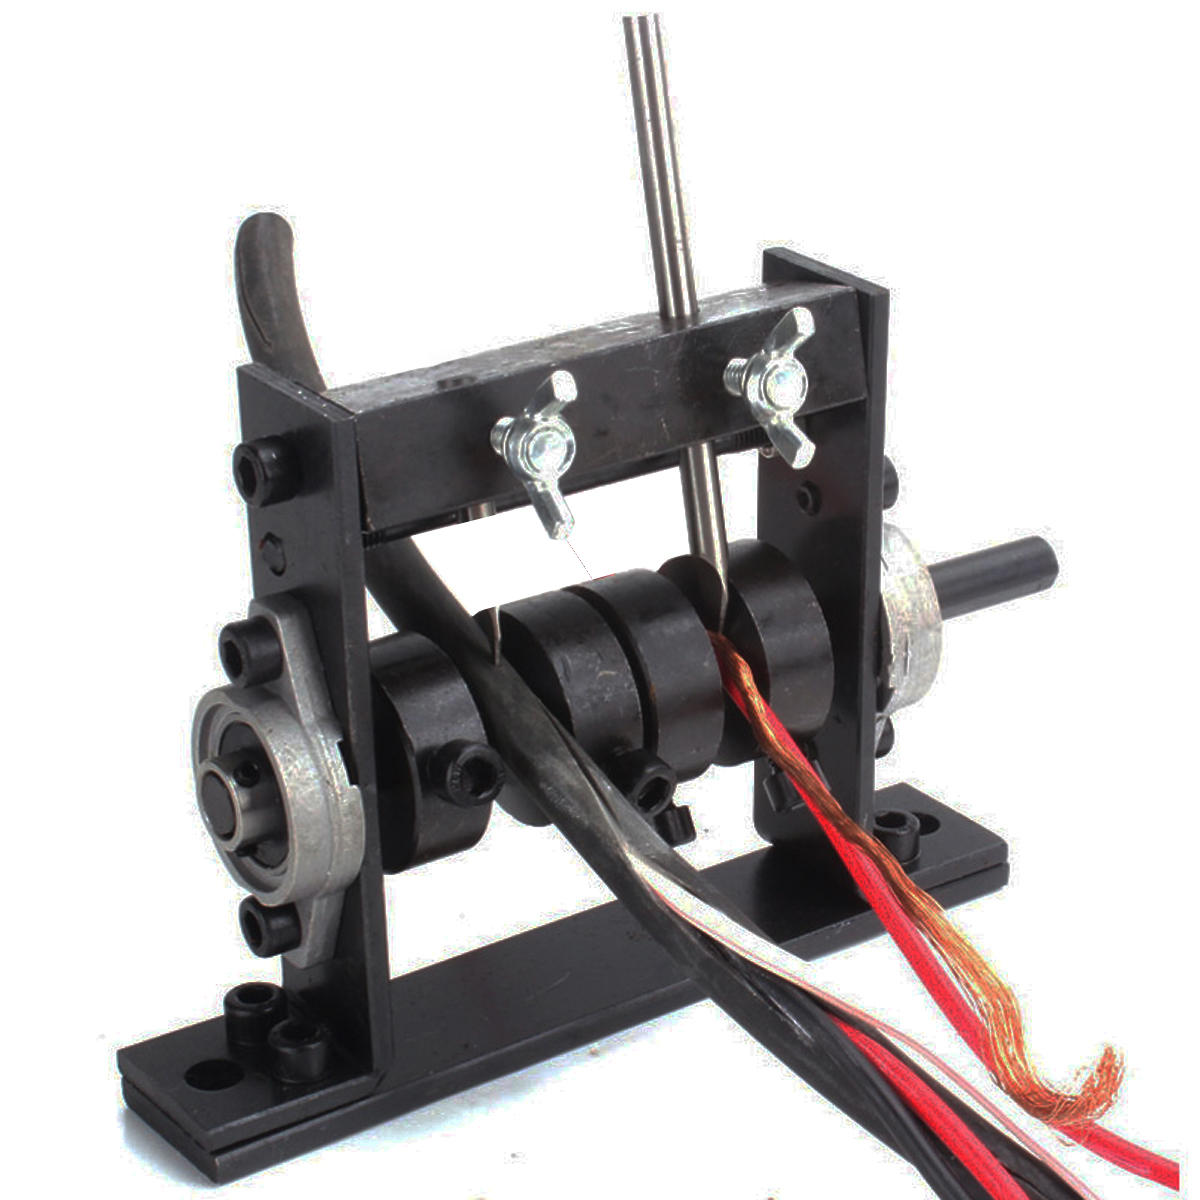 1-30mm Scrap Cable Peeling Strippers Fixture Manual Copper Wire Stripping Machine